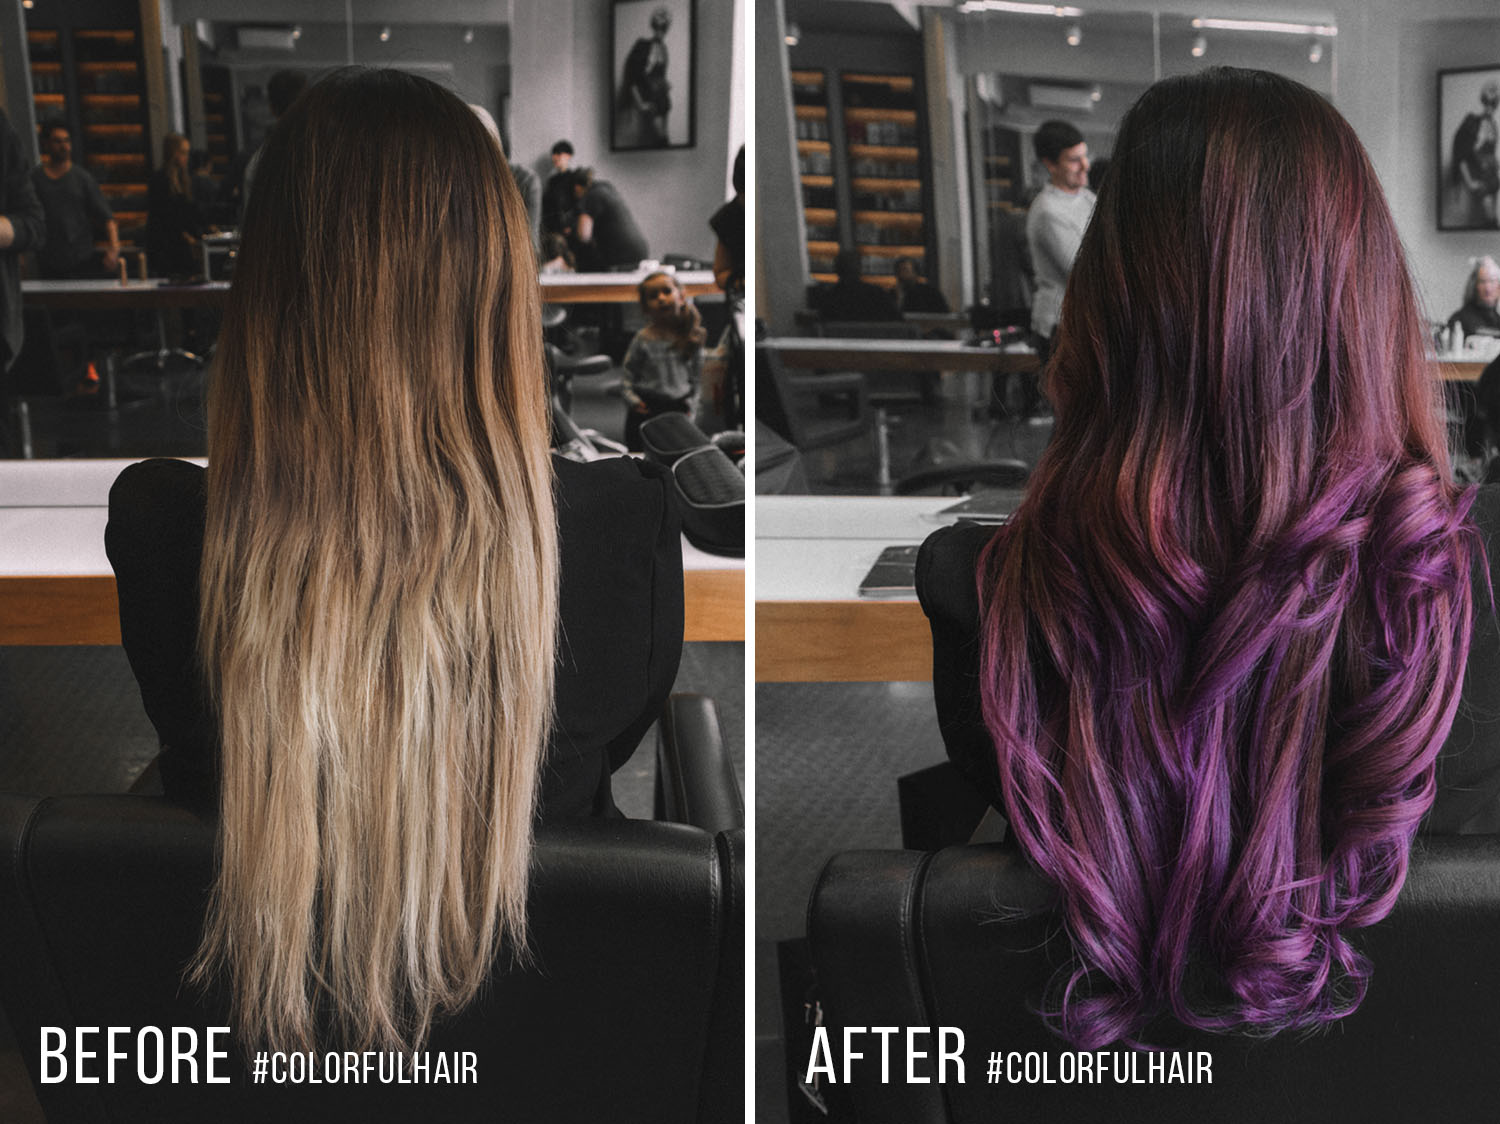 Before & After Purple balayage & #Colorfulhair with L'Oreal Professionnel